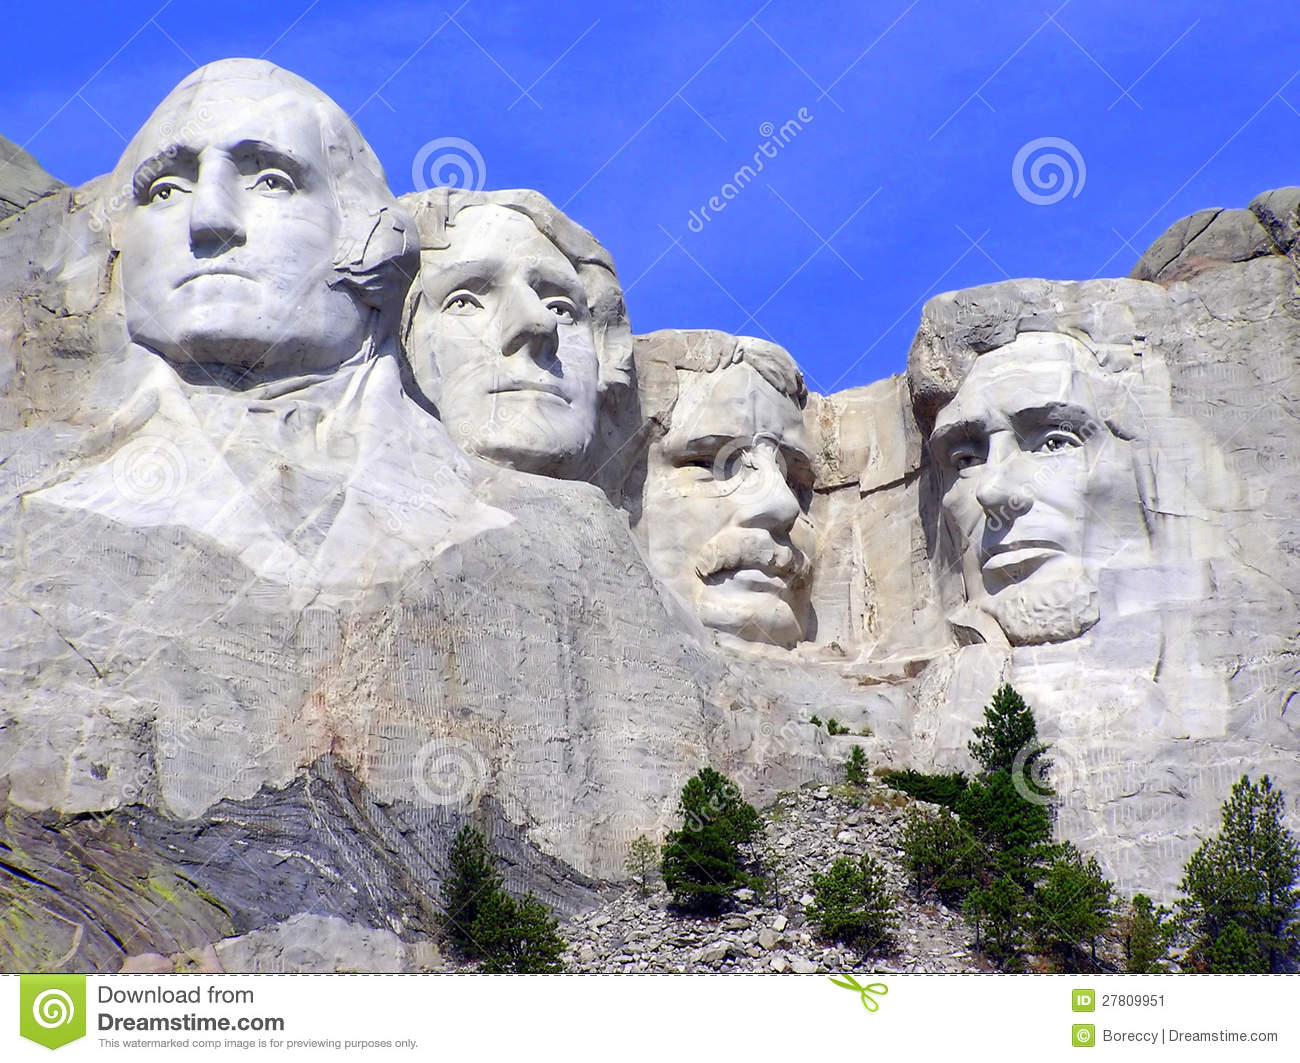 Mt rushmore sculpture of presidents south dakota stock